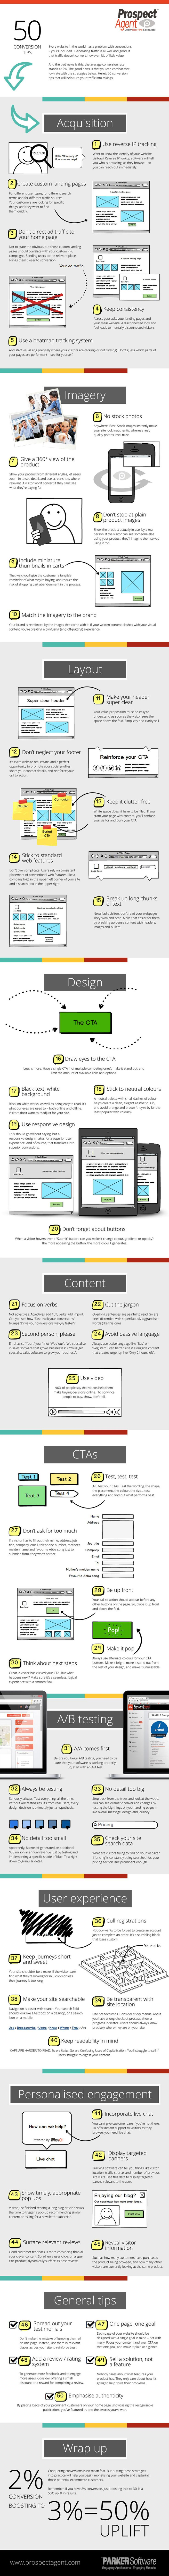 50 E-Commerce Conversion Tips - Infographics - Website Magazine